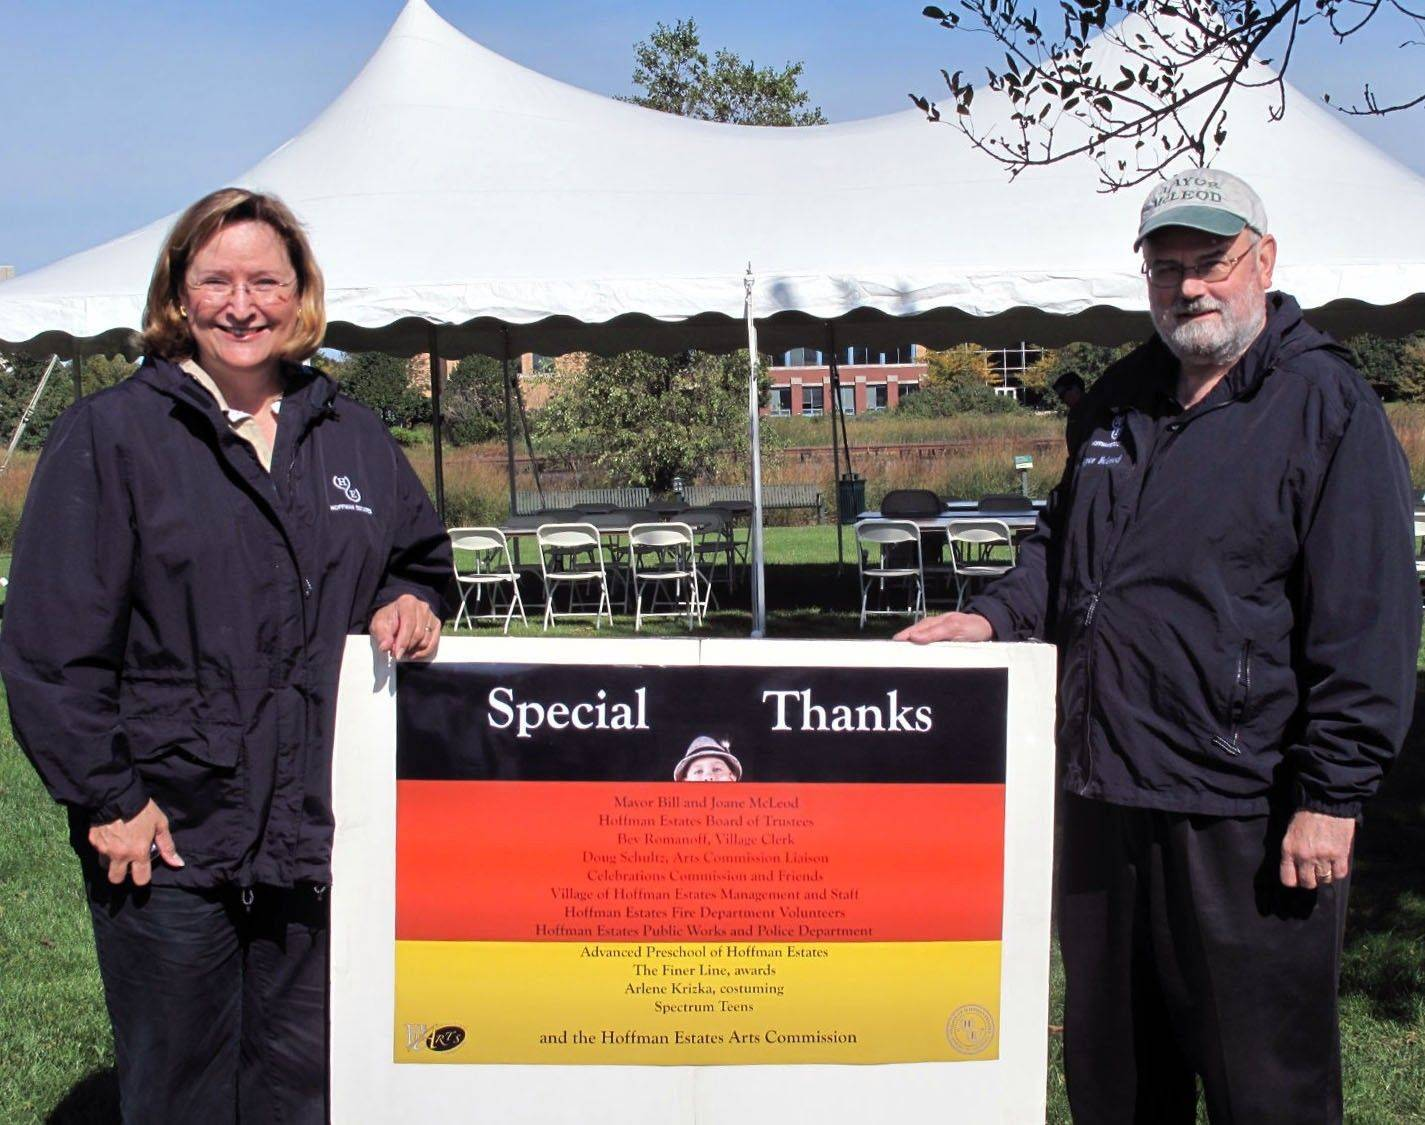 Mayor William D. McLeod, right, and his wife, Joane, at last year's Platzkonzert Germanfest. This year's event will be Saturday, Sept. 17, at the Village Green.